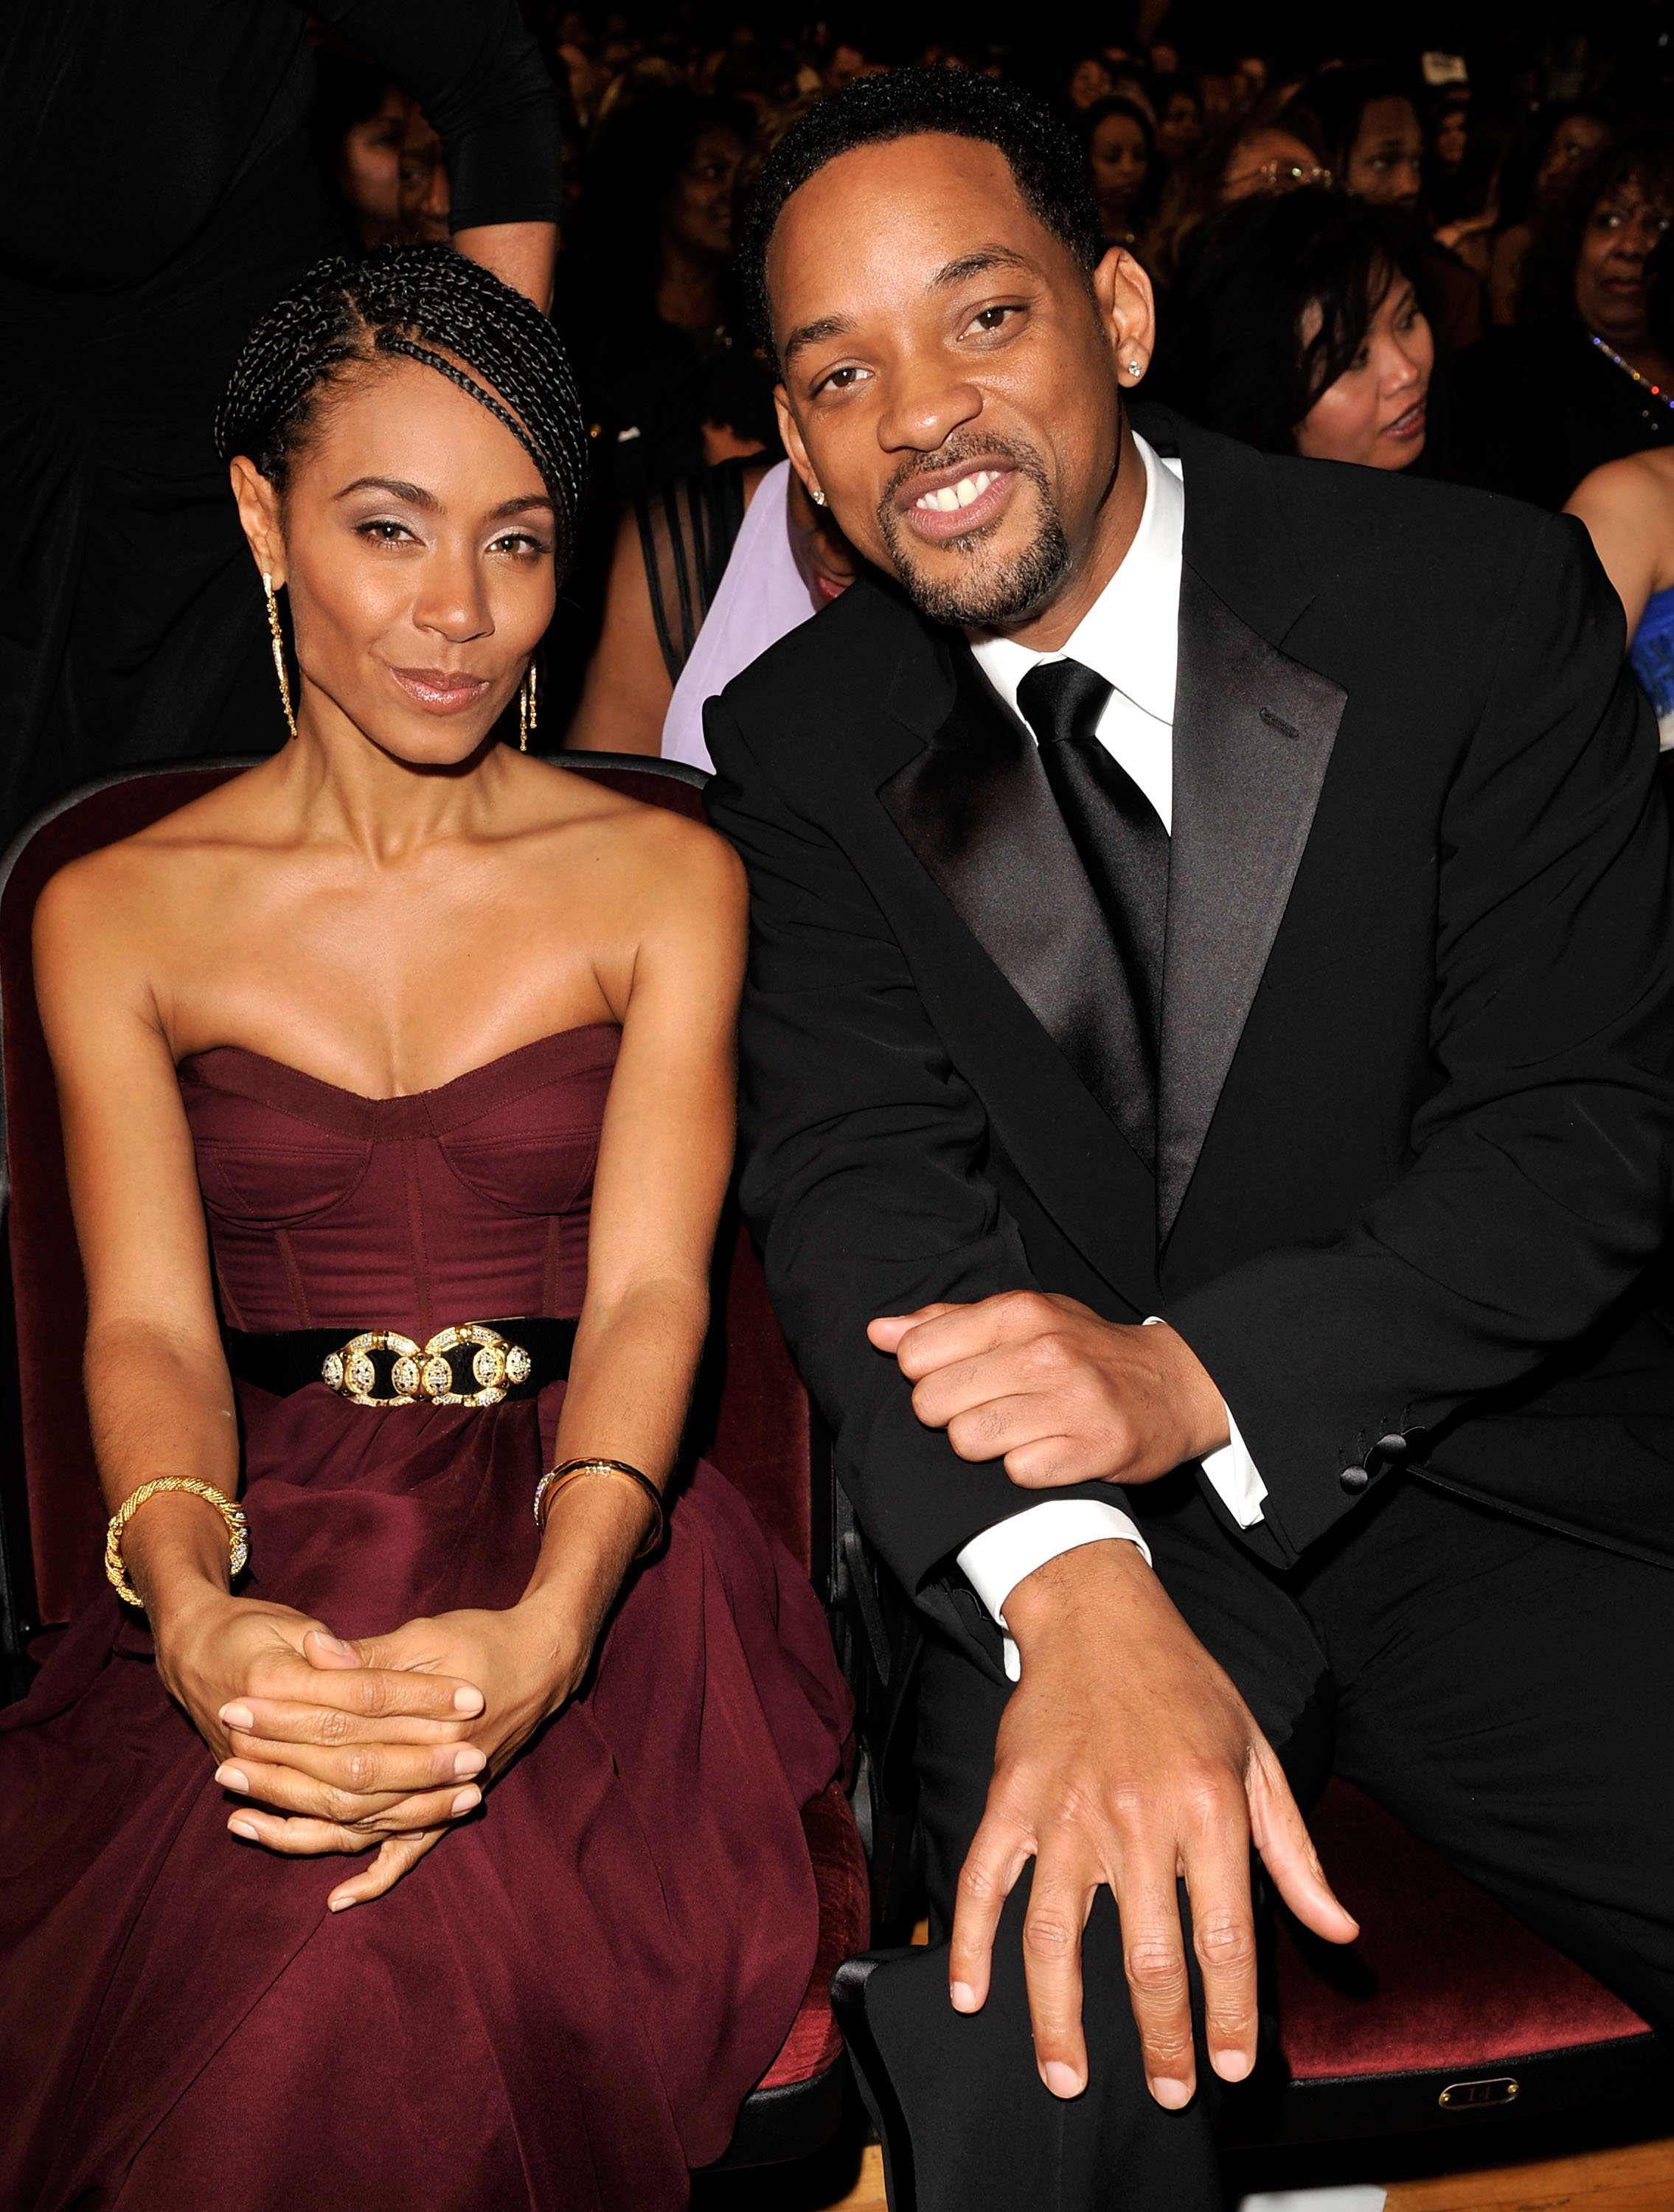 Jada Pinkett Smith & Will Smith at the 40th NAACP Image Awards on Feb. 12, 2009 in California | Photo: Getty Images